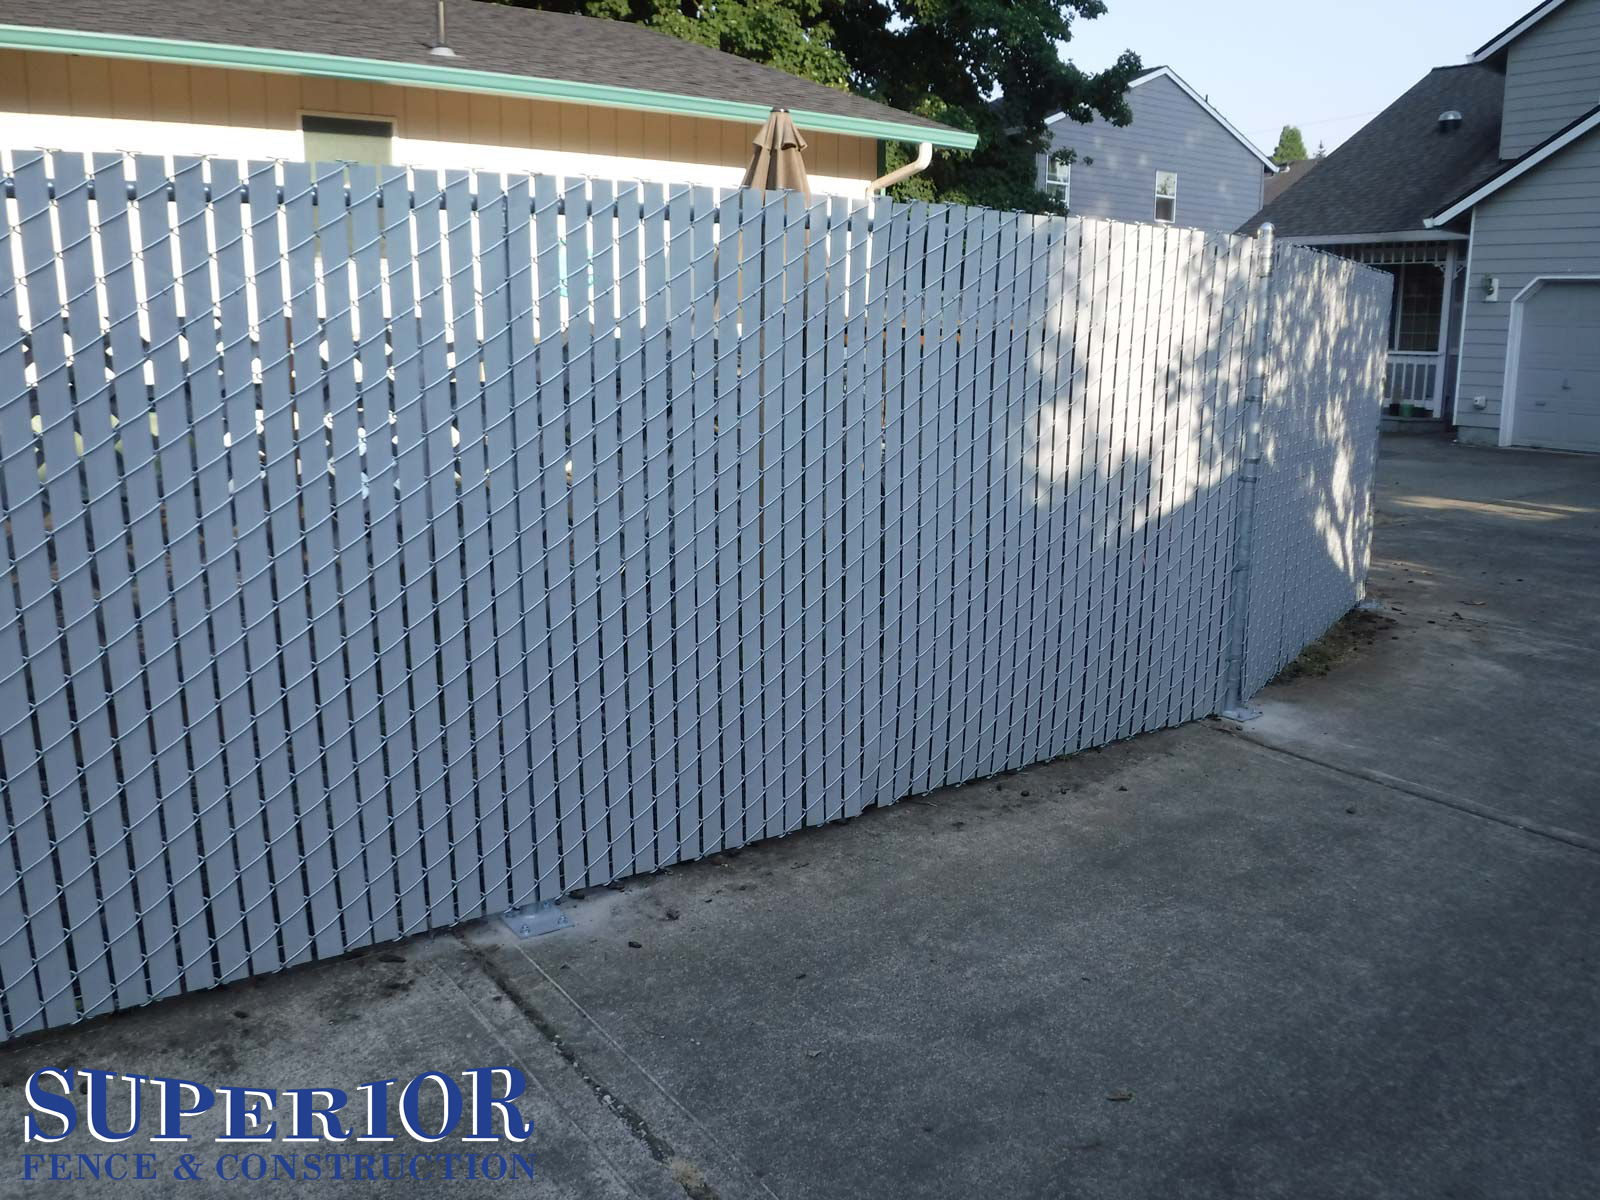 Portland Chain link fence contractor and installation